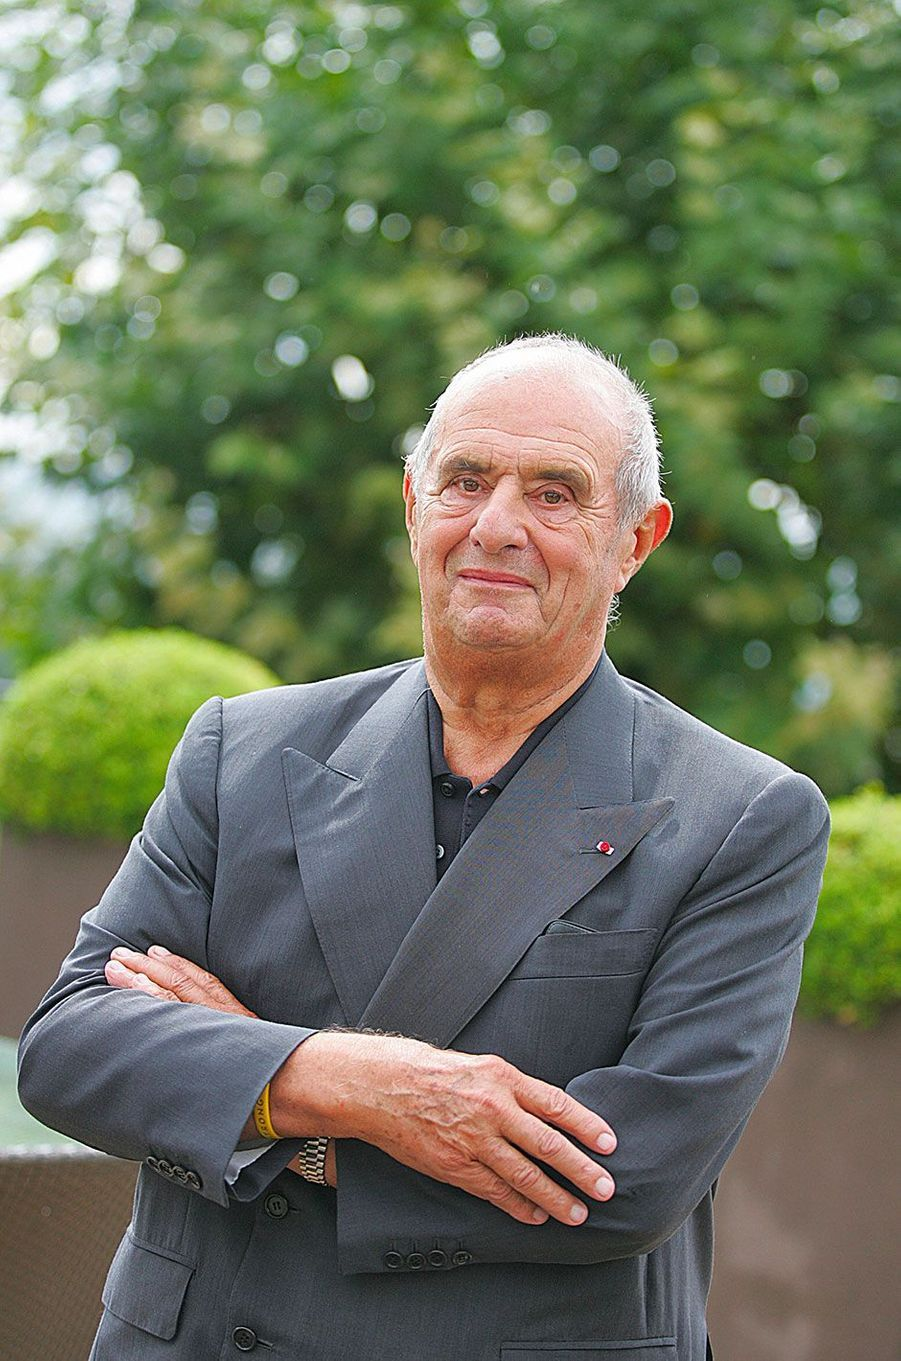 Le chef Paul Bocuse, en septembre 2006.